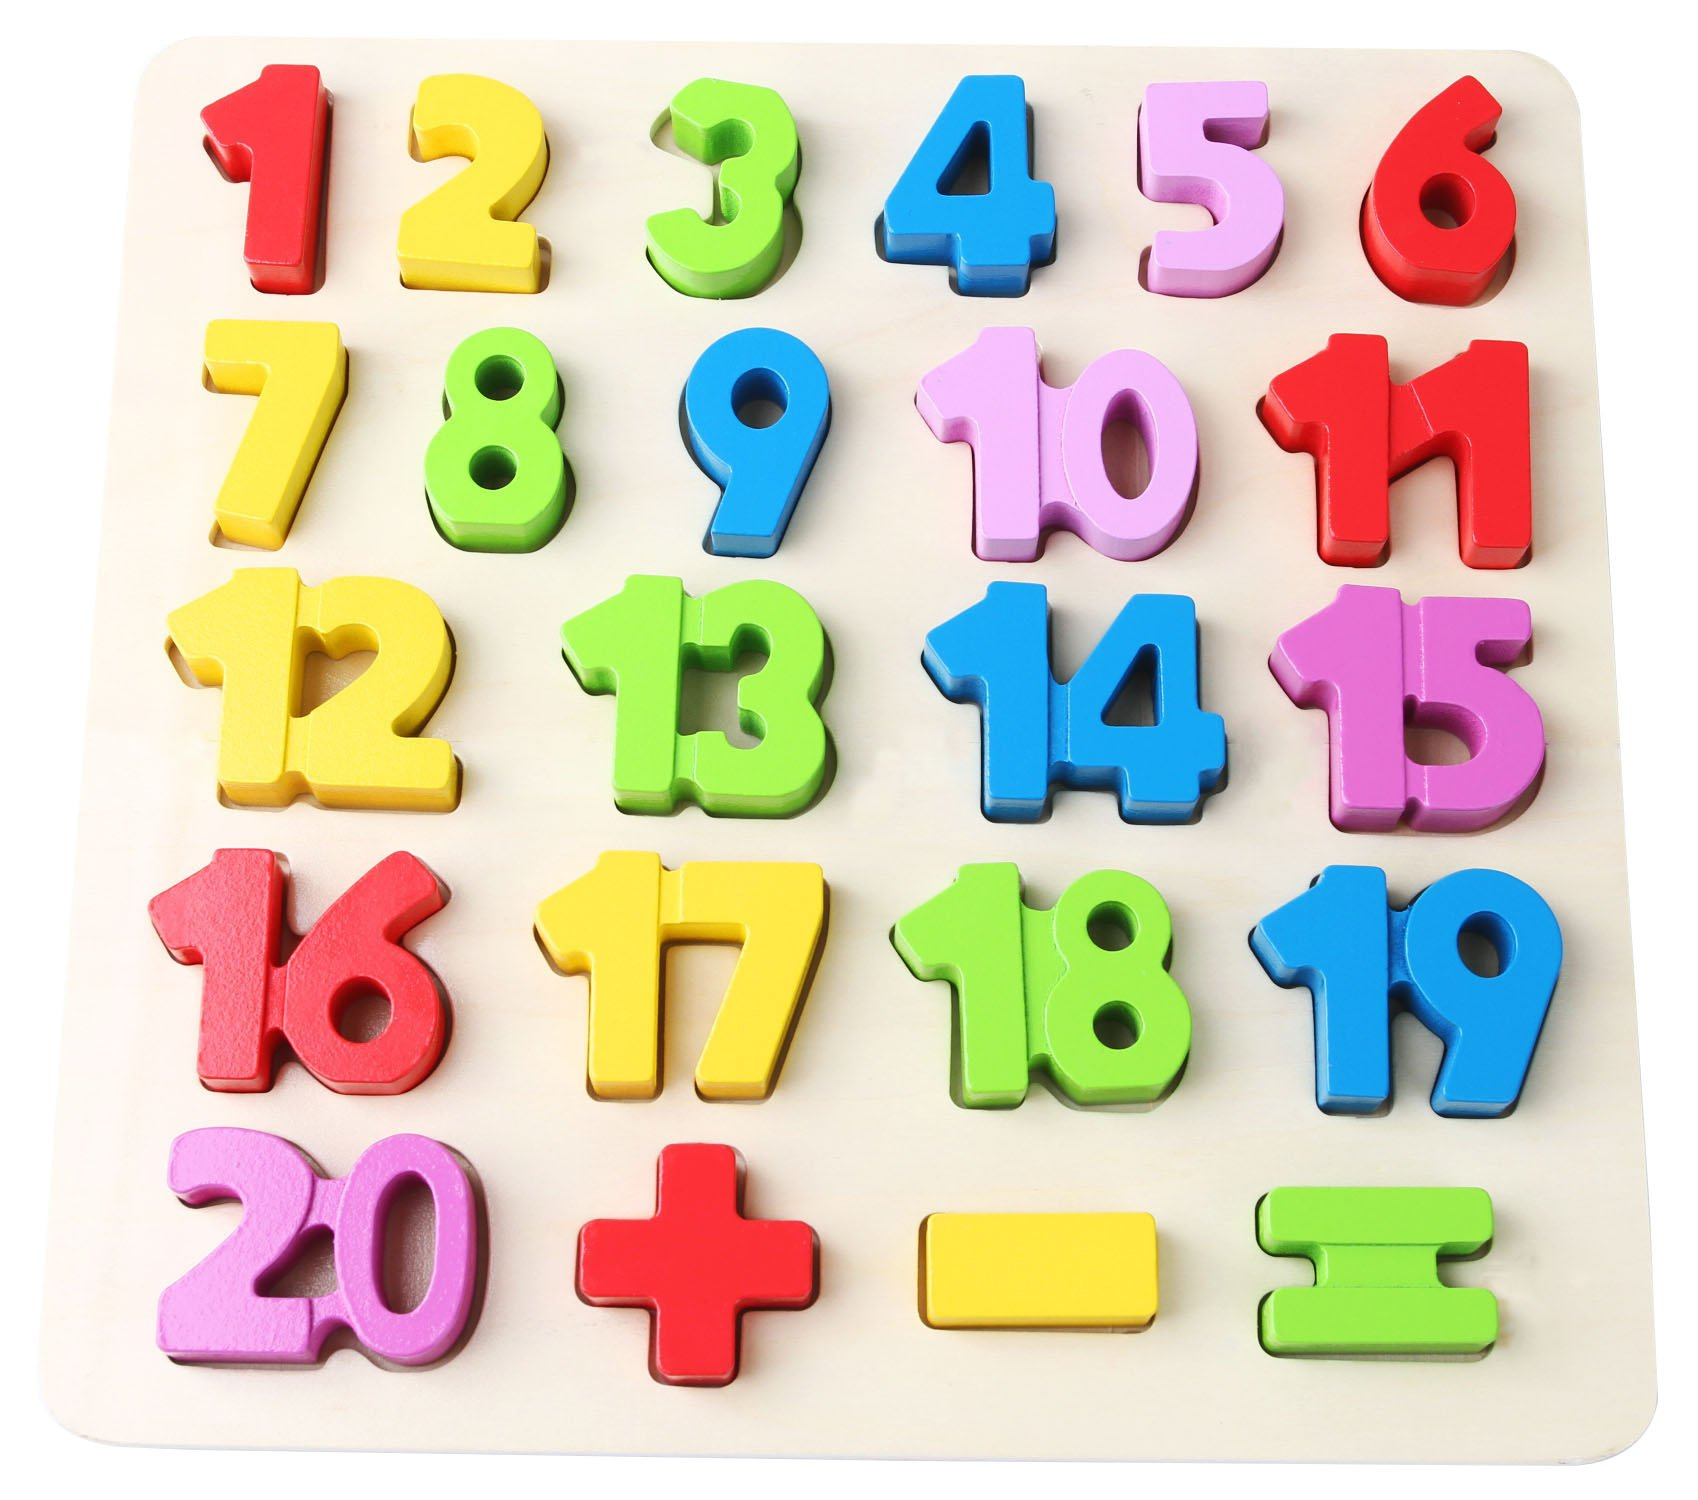 Babe Rock Wooden Number Puzzles for Toddlers 2-3 Years Old Boy Girl Learning Toys 23 Pieces by Babe Rock